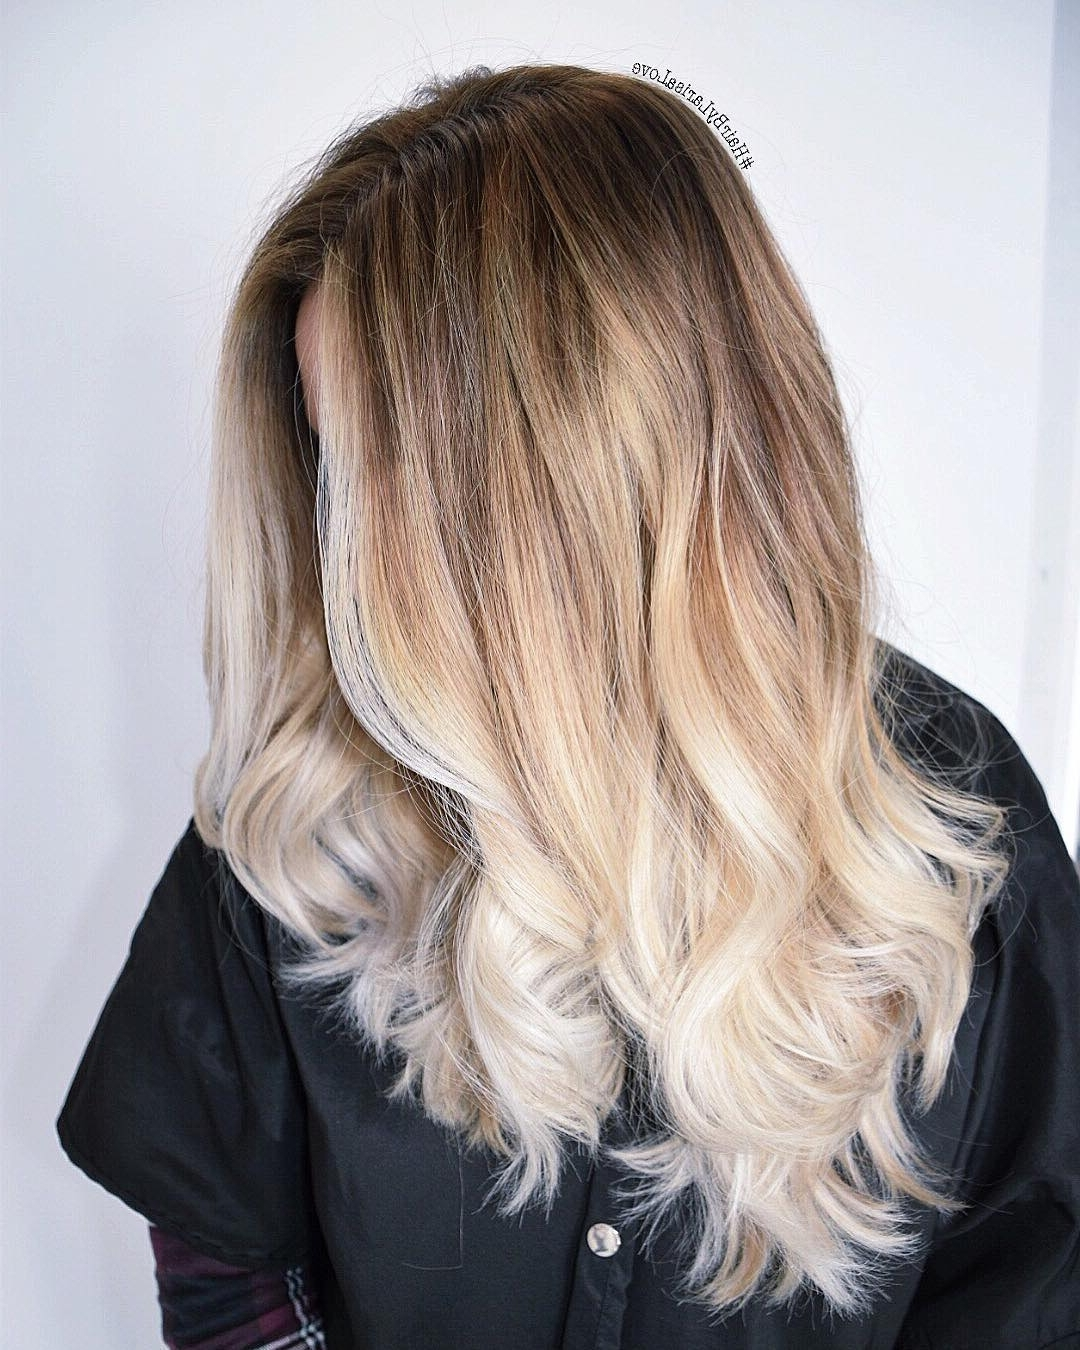 Widely Used Soft Waves Blonde Hairstyles With Platinum Tips Intended For 20 Perfect Ways To Get Beach Waves In Your Hair {2018 Update} (View 6 of 20)